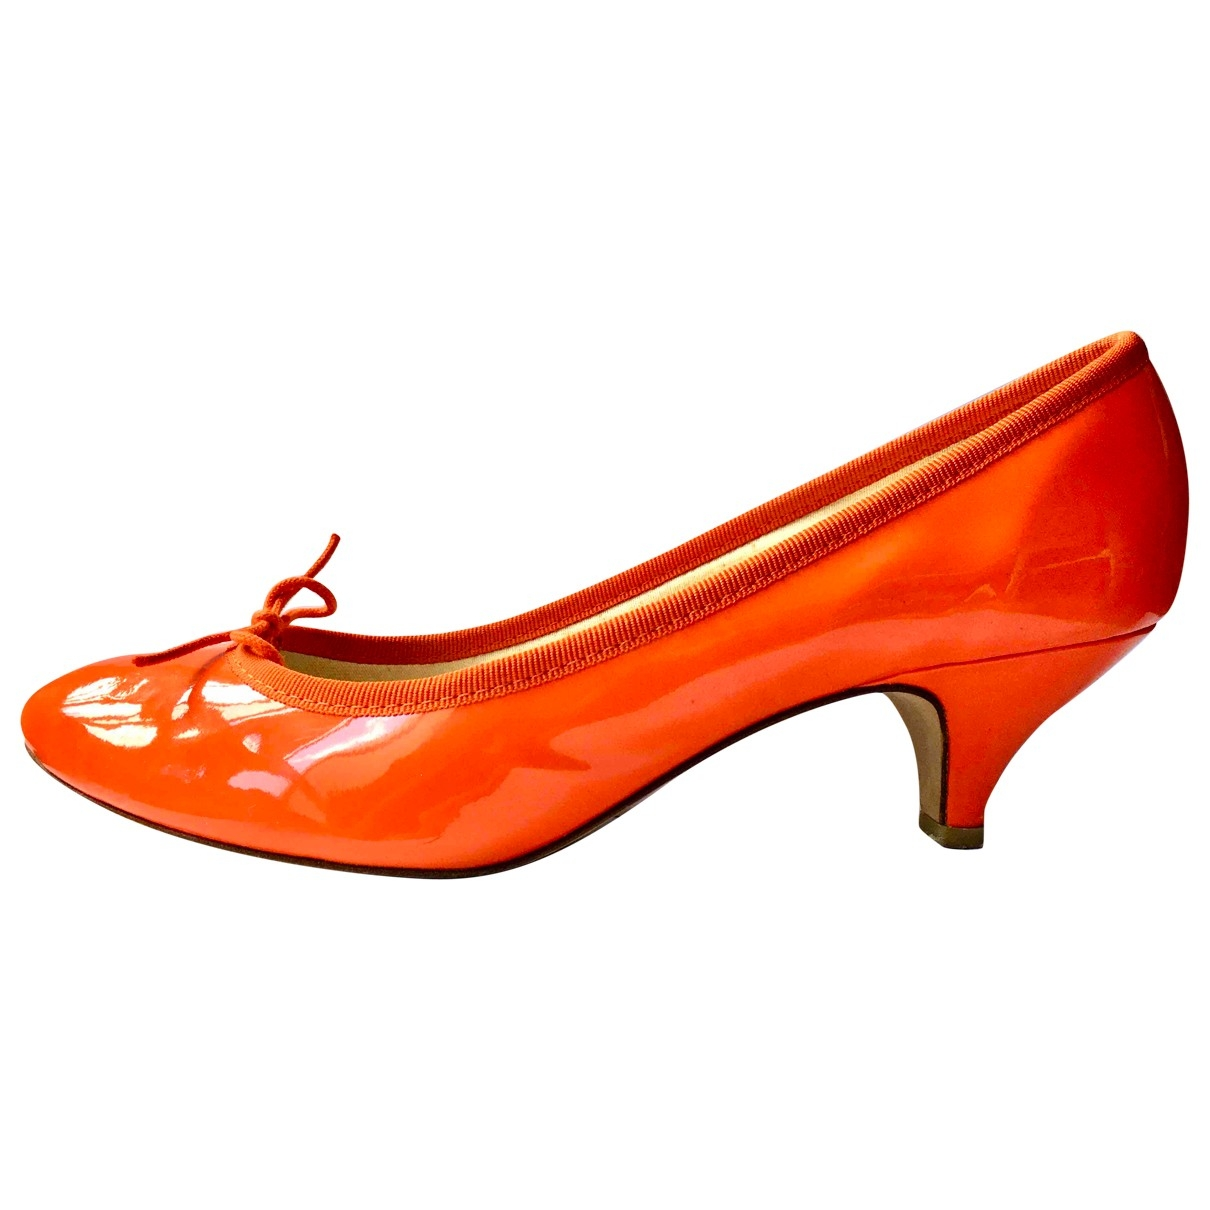 Repetto \N Red Patent leather Heels for Women 40 EU